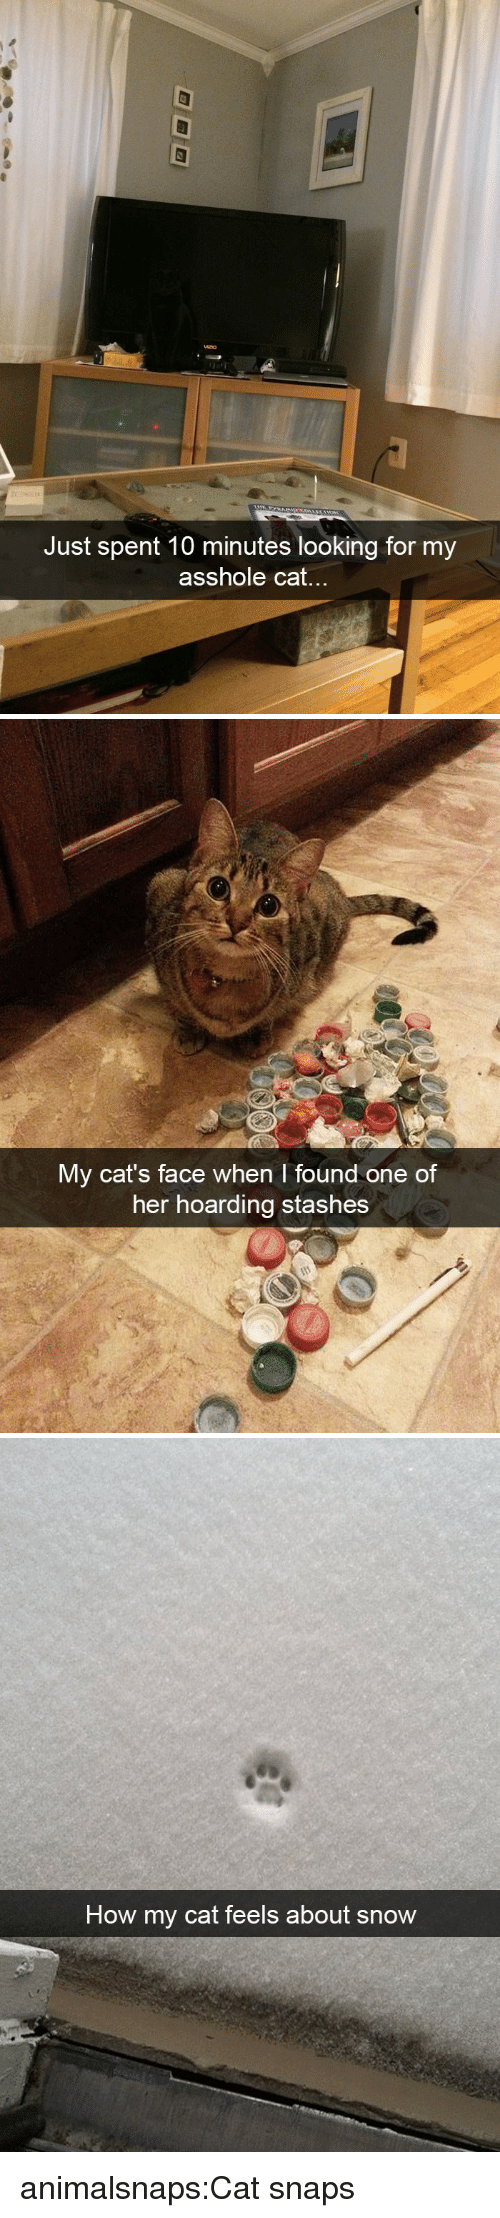 hoarding: Just spent 10 minutes looking for my  asshole cat...   My cat's face when I found one of  her hoarding stashes   How my cat feels about snow animalsnaps:Cat snaps